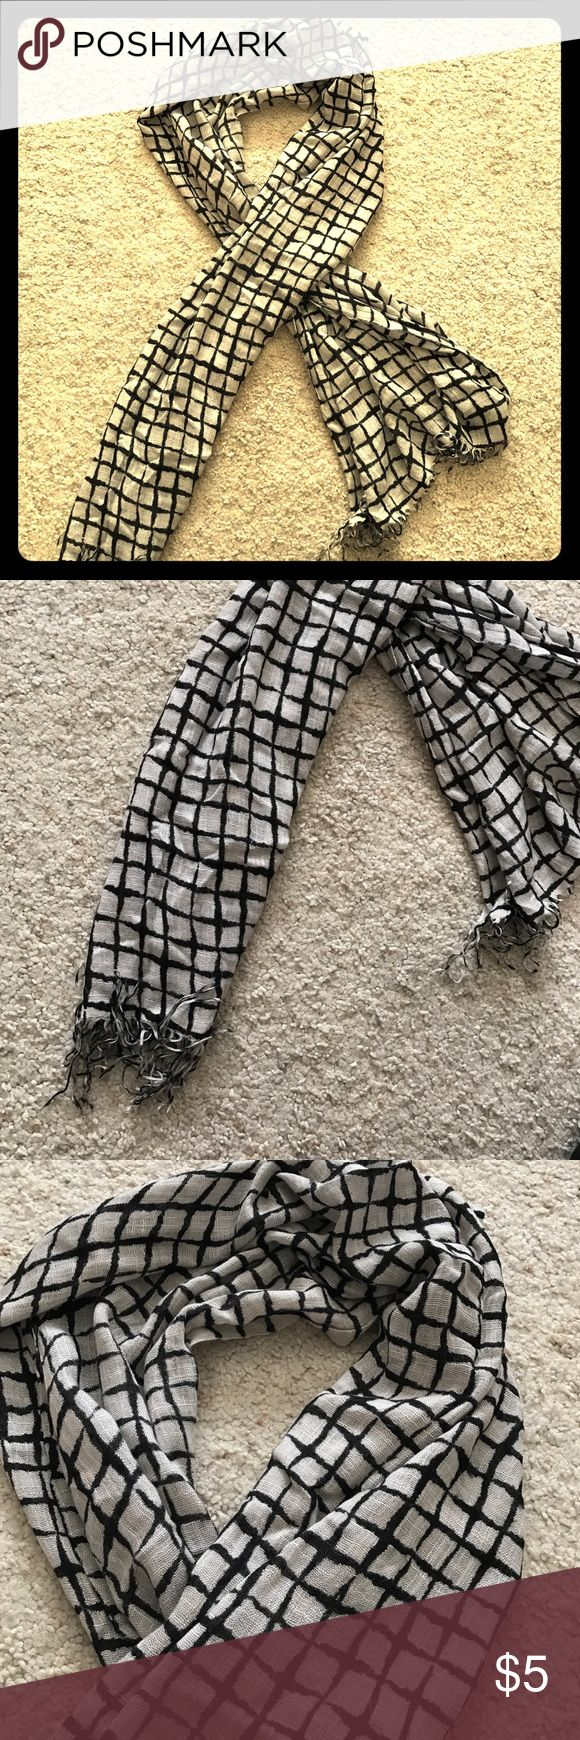 Deena & Ozzy Windowpane Scarf- Urban Outfitters Good condition, perfect accessory! Deena & Ozzy Accessories Scarves & Wraps